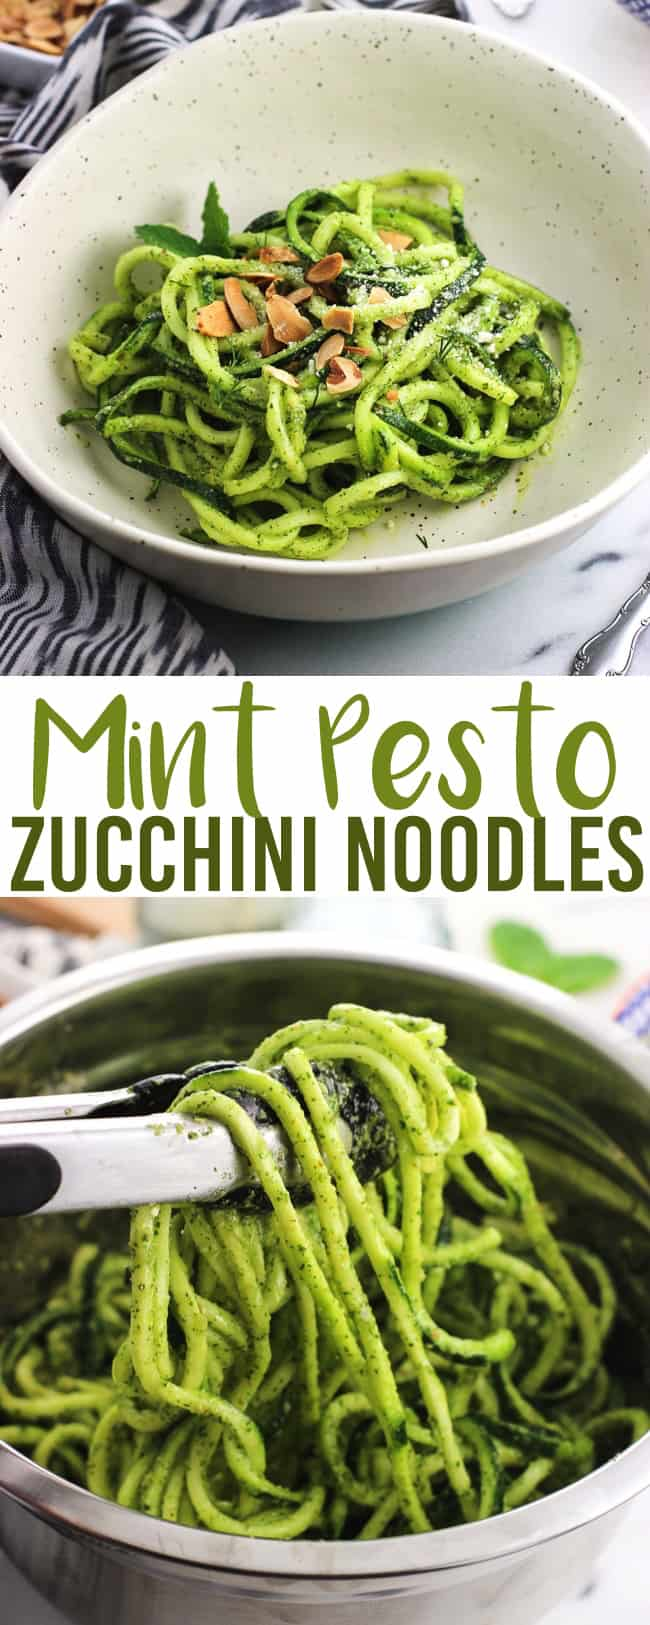 Mint pesto zucchini noodles make a refreshing side dish or main meal recipe when paired with chicken or the protein of your choice. Raw spiralized 'zoodles' are tossed with pesto made with mint, dill, and toasted almonds for an easy and healthy take on pesto pasta.